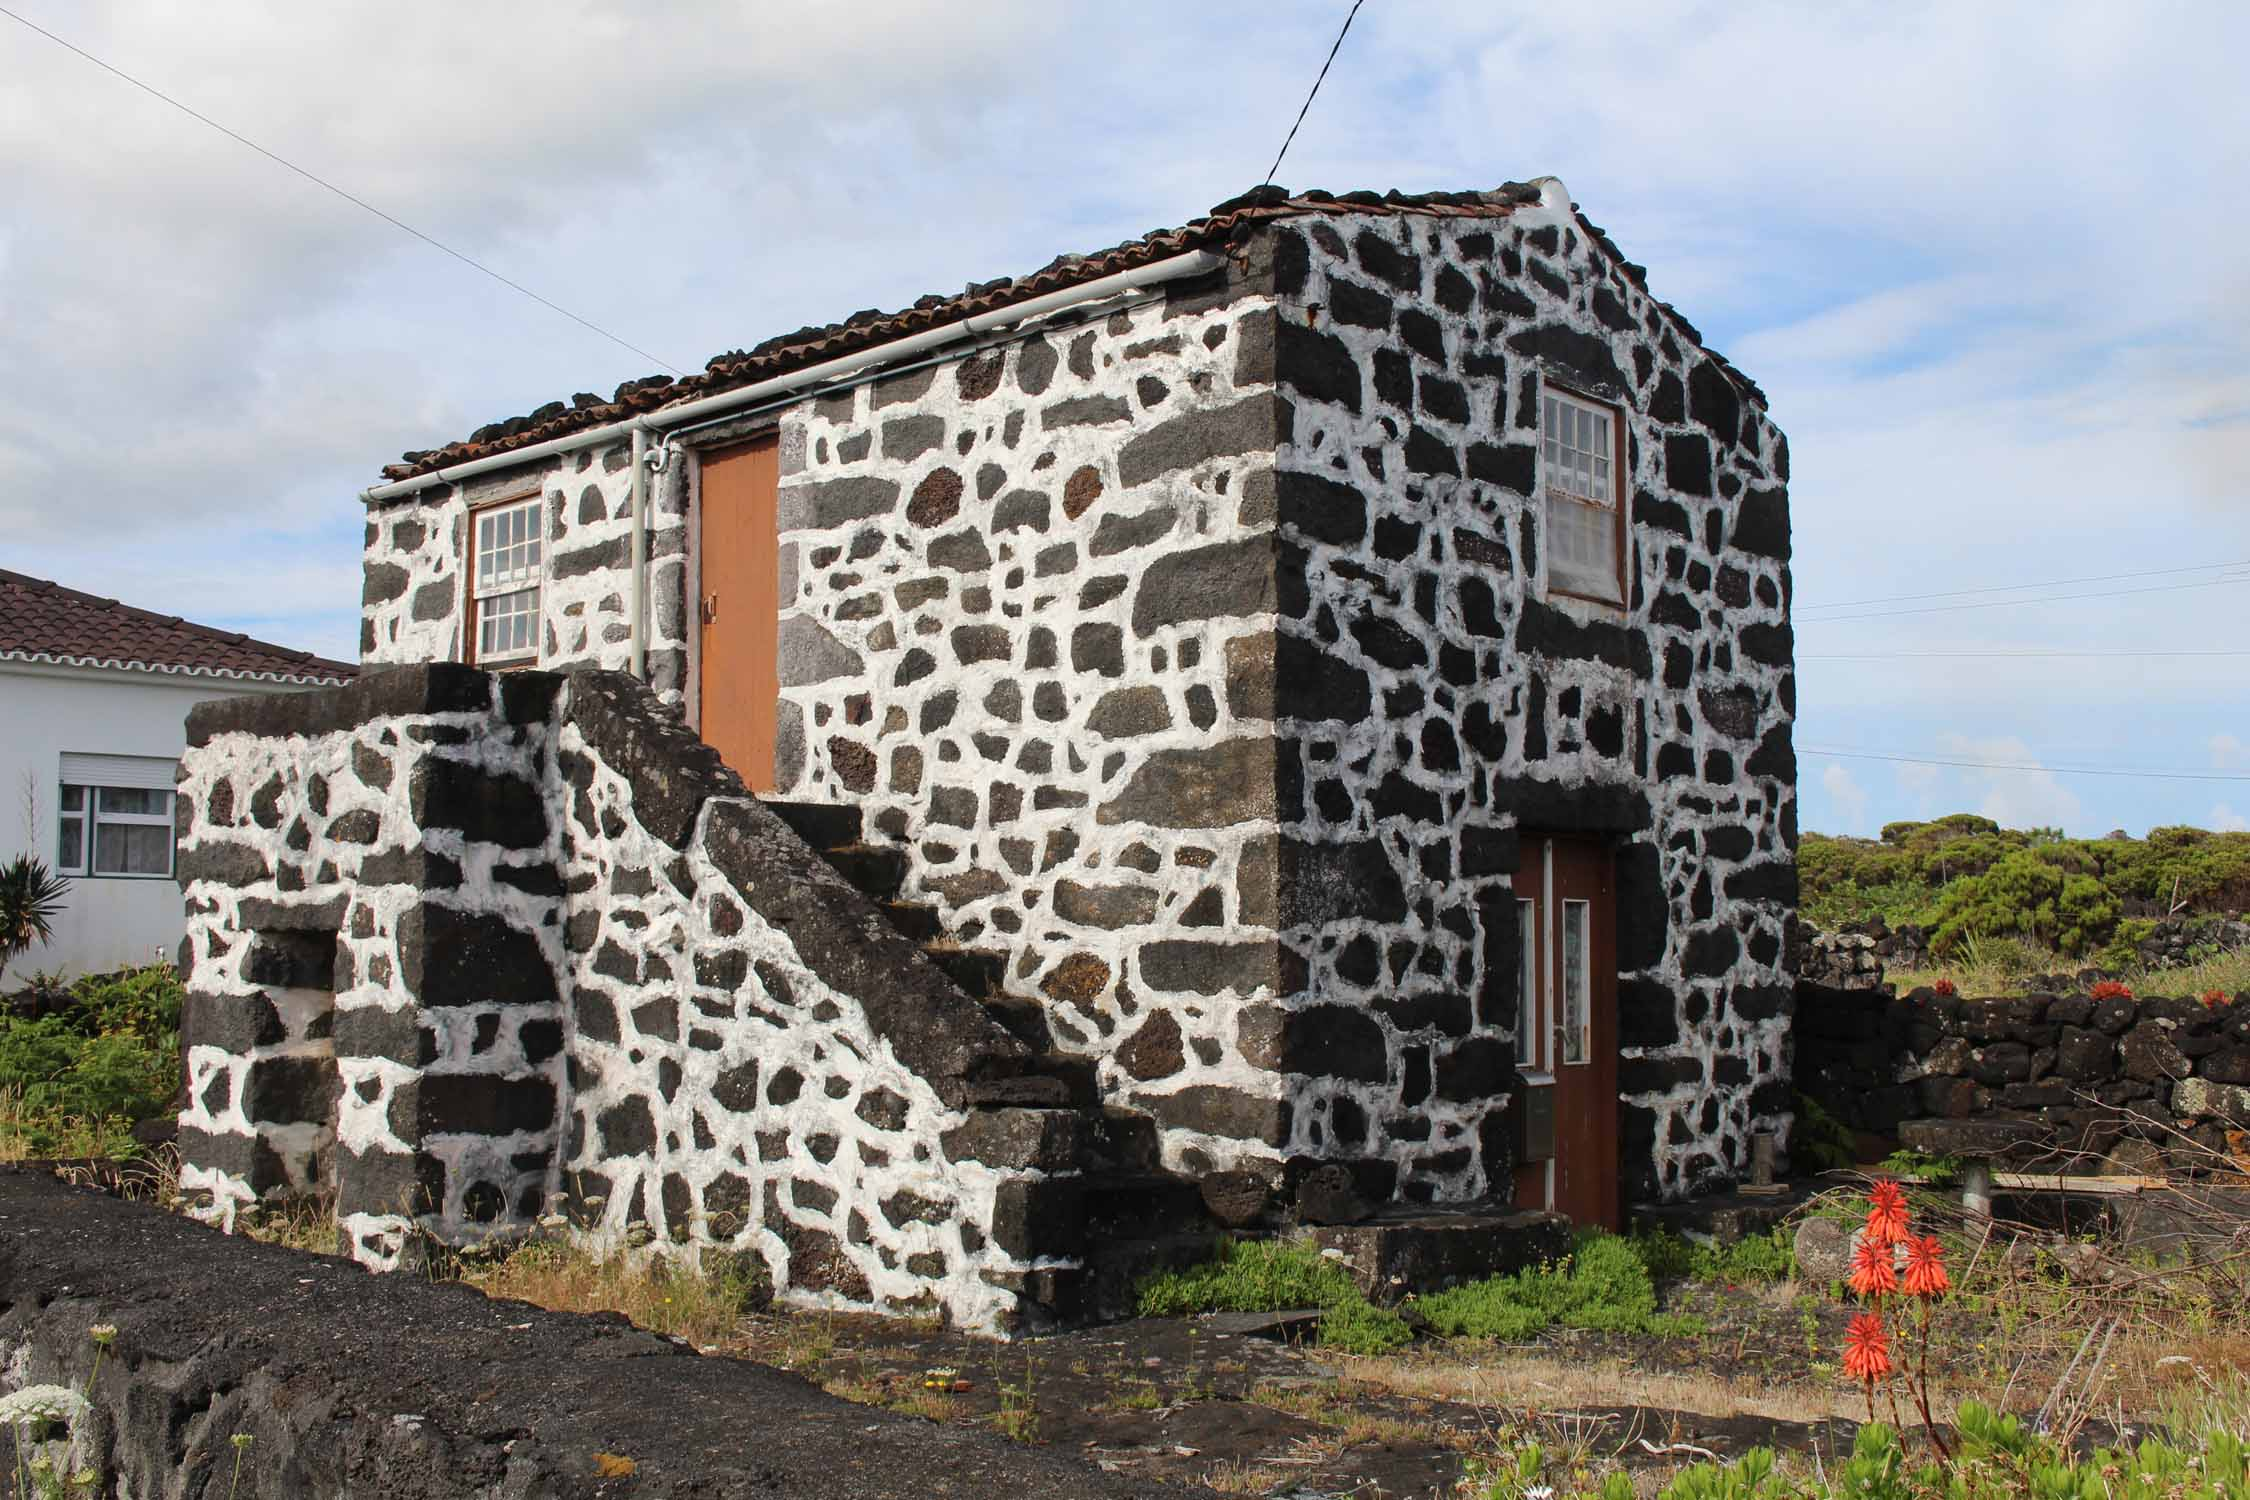 Azores, Pico Island, Arcos, typical house